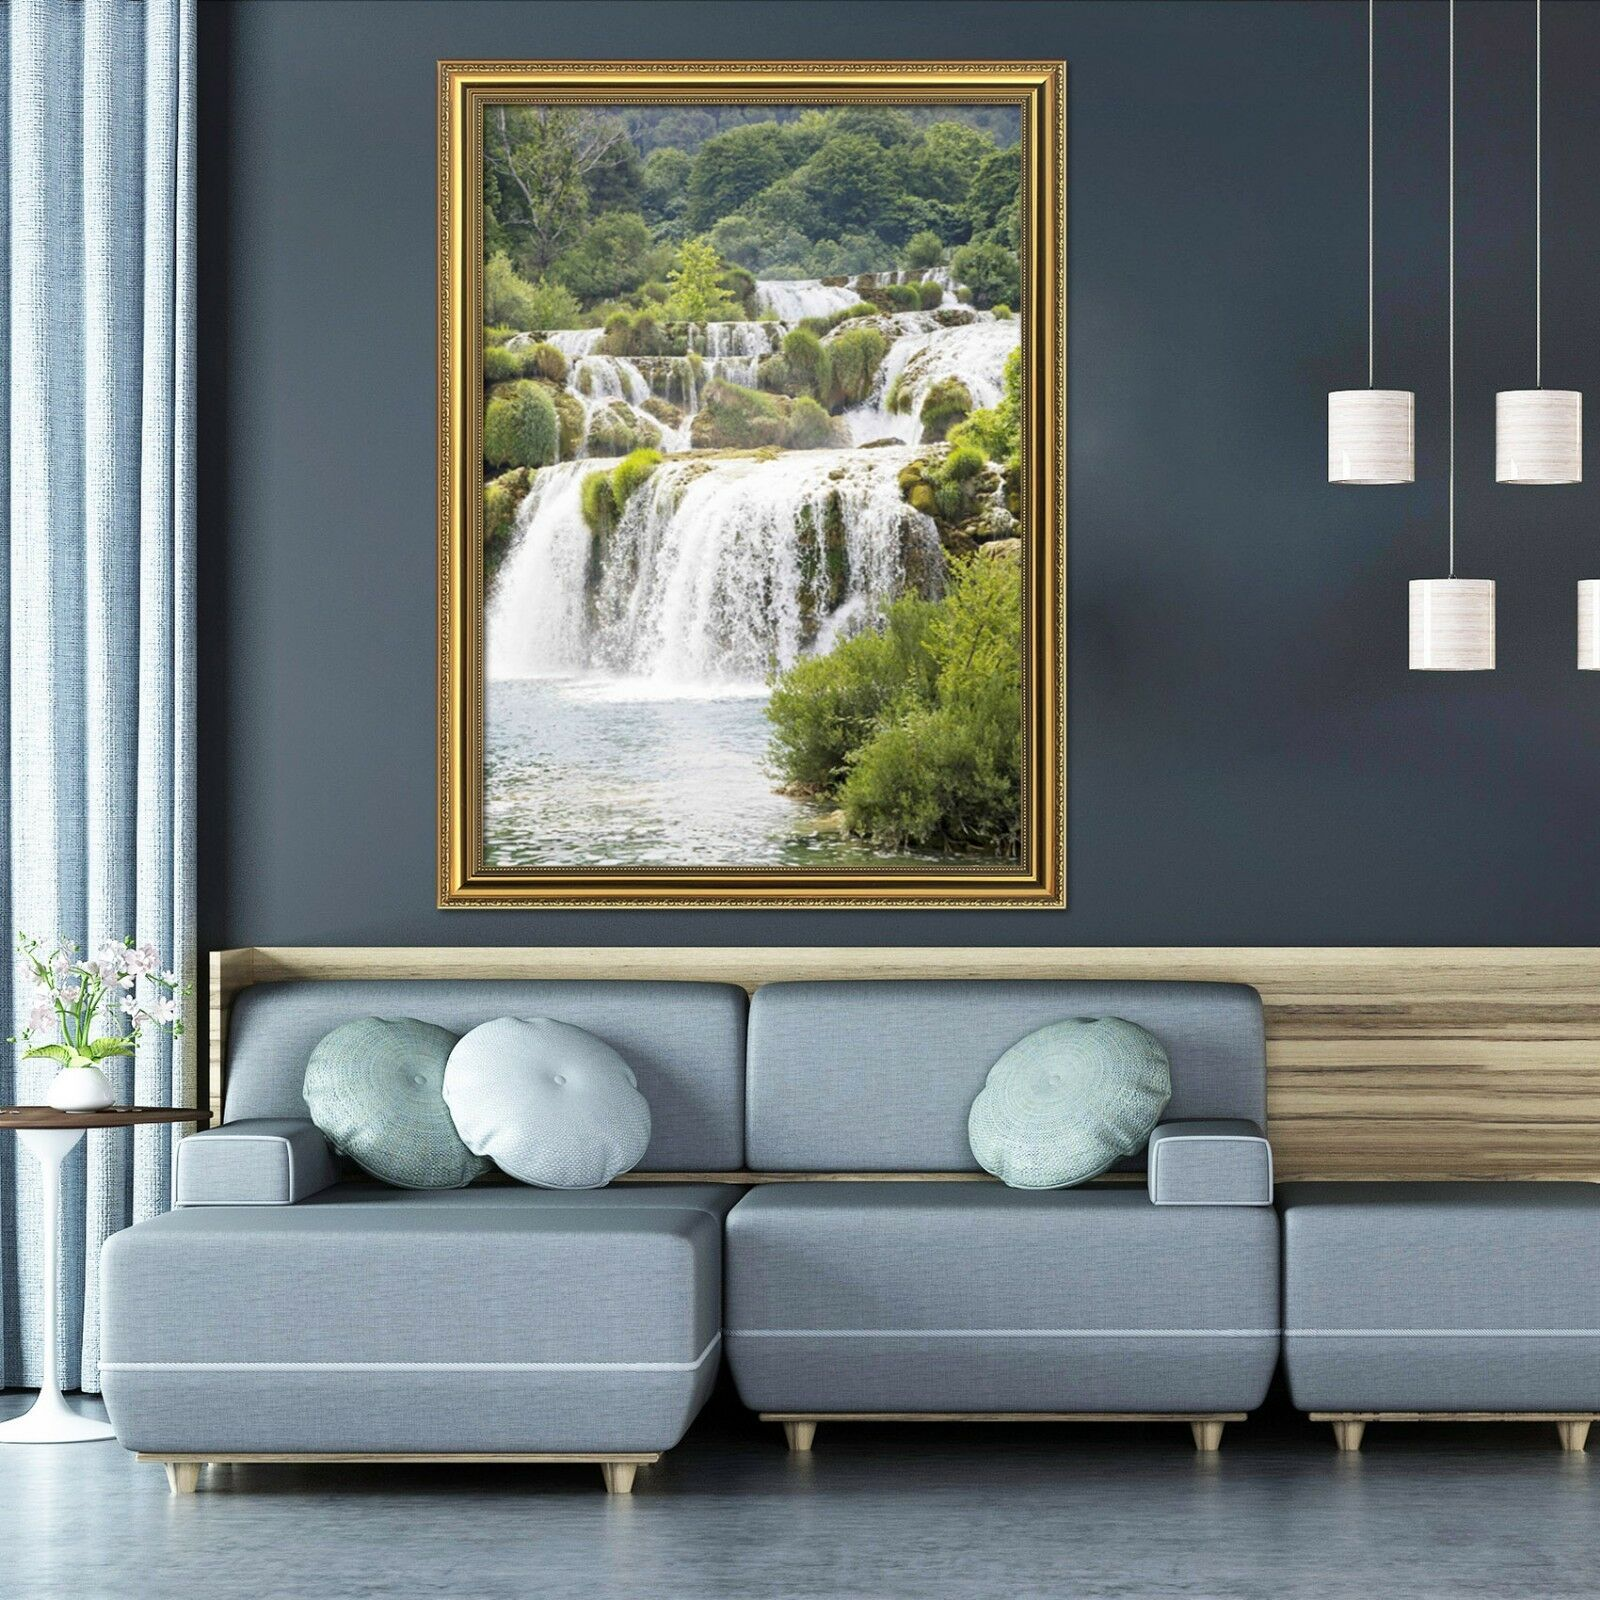 3D River Waterfall 51 Framed Poster Home Decor Print Painting Art AJ UK